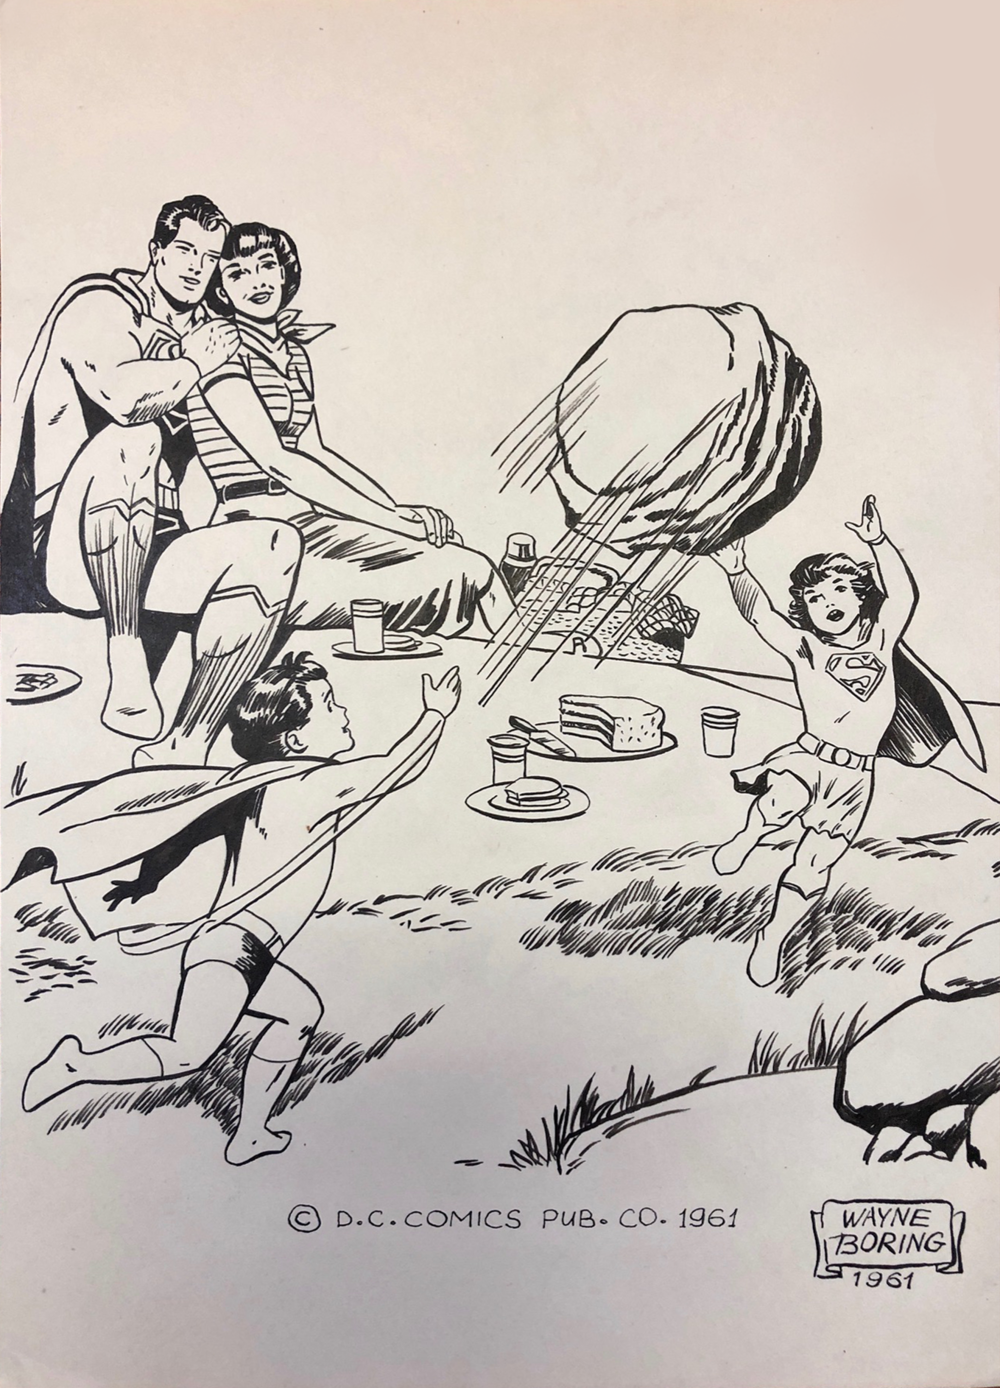 A Super Family   Original Ink illustration   7 x 11 inches unframed   1961  Signed Wayne Boring* Also known as Jack Harmon